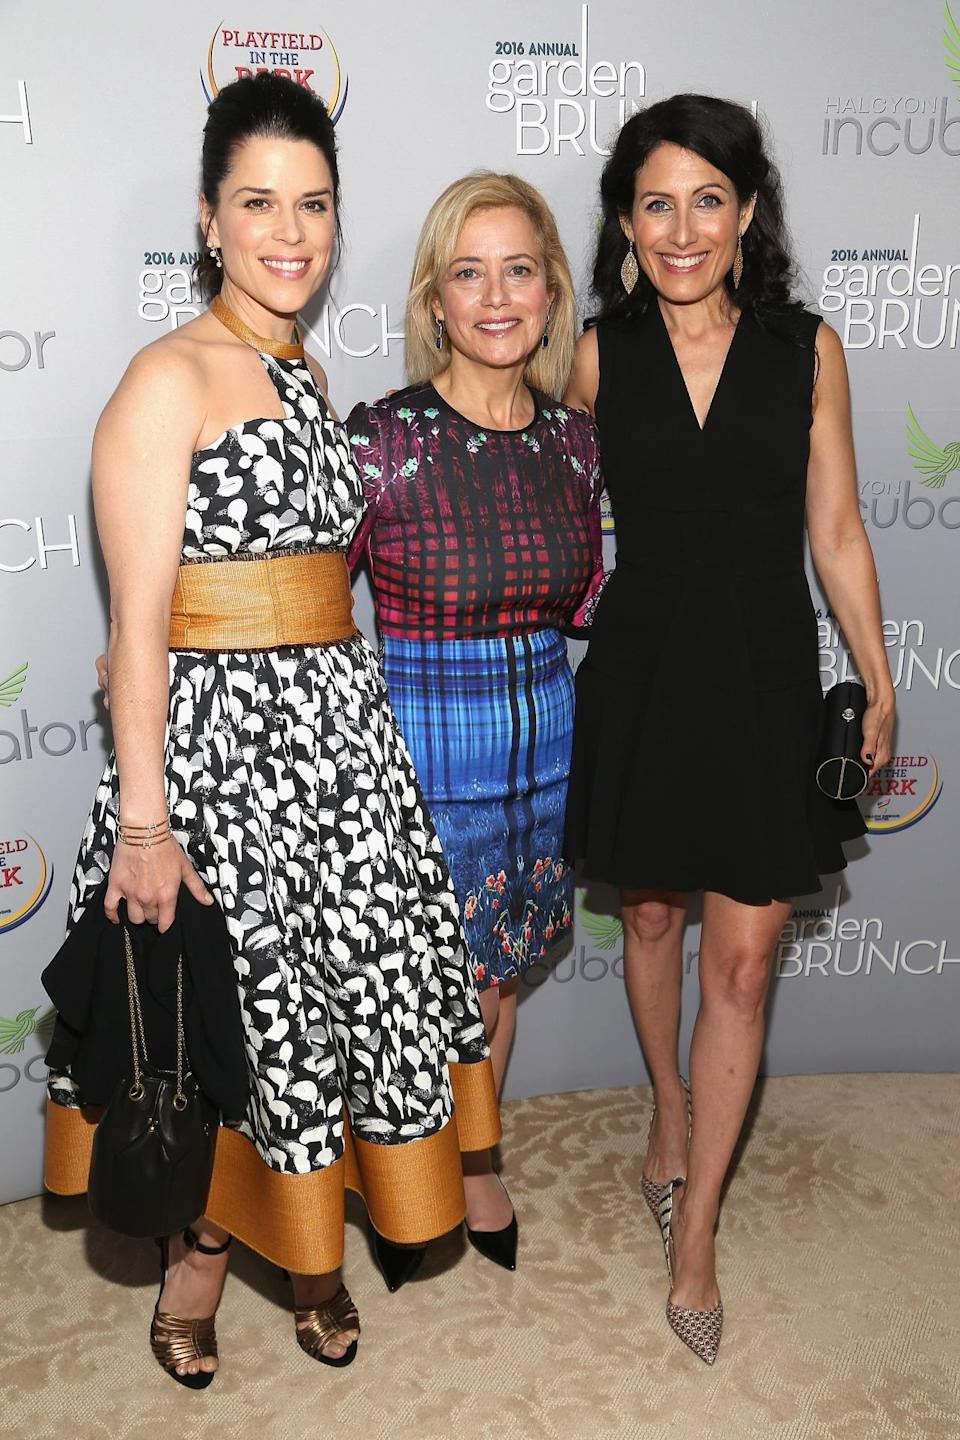 <p>Neve Campbell, Hilary Rosen and Lisa Edelstein attend the Garden Brunch prior to the 102nd White House Correspondents' Dinner, April 30. <i>(Photo: Paul Morigi/WireImage)</i></p>